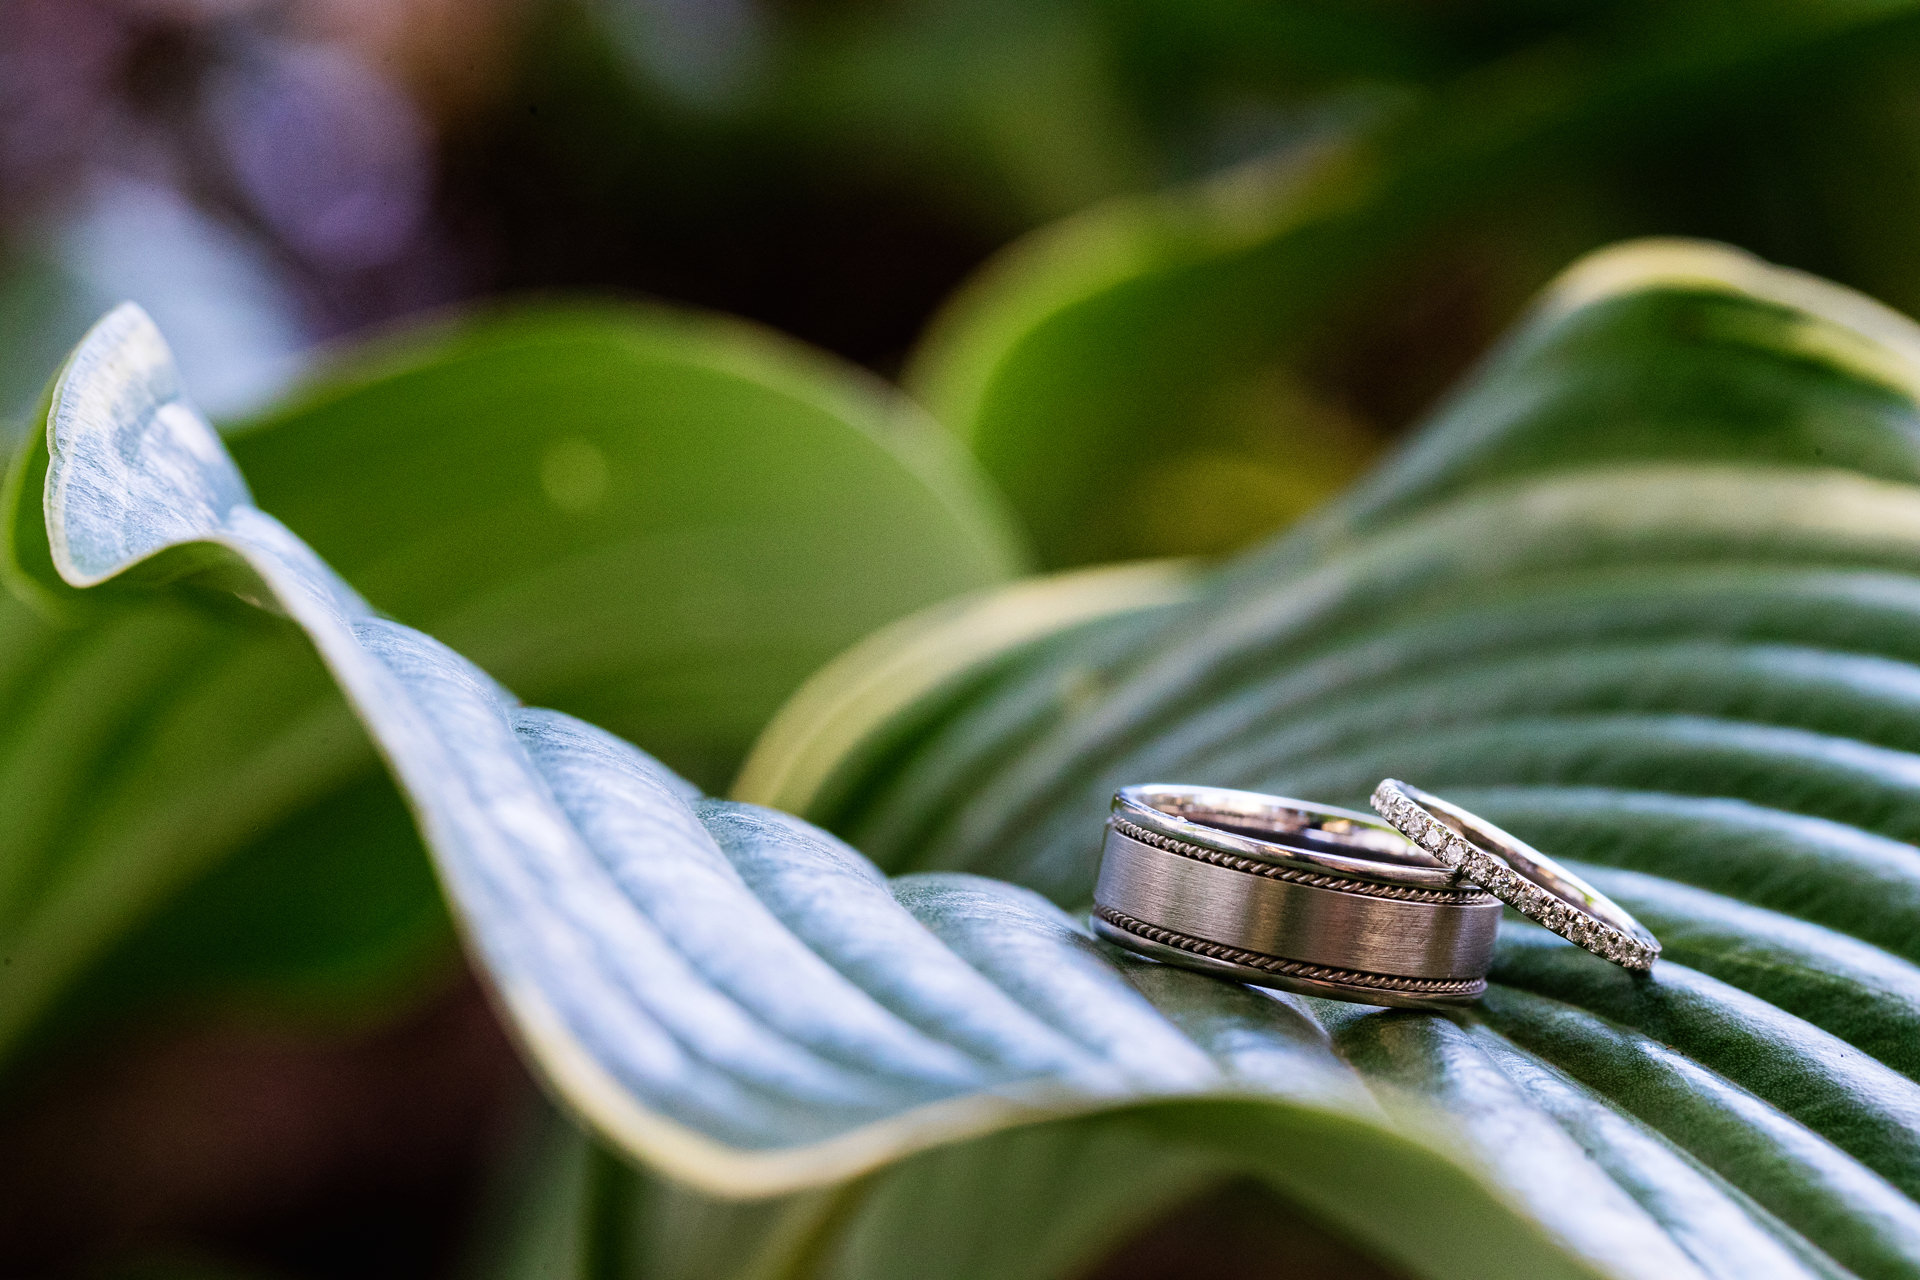 Bound Brook, New Jersey Elopement Ring Detail Photo | A detail image of the couples wedding rings